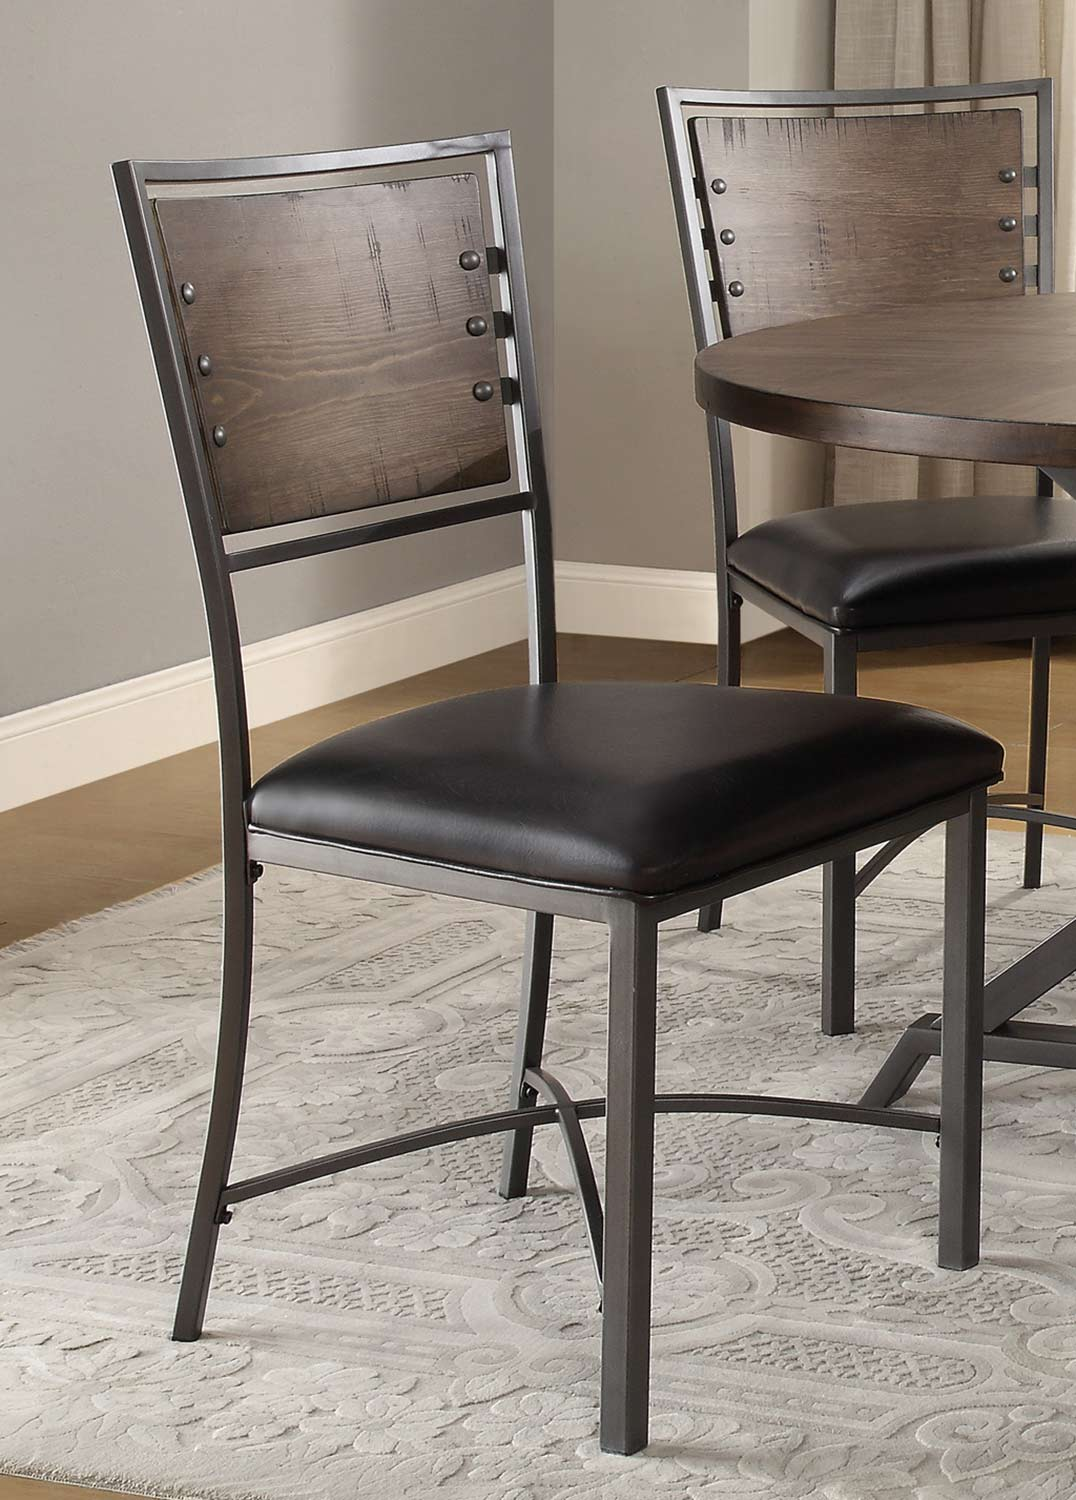 Homelegance Fideo Side Chair - Rustic - Gray Metal